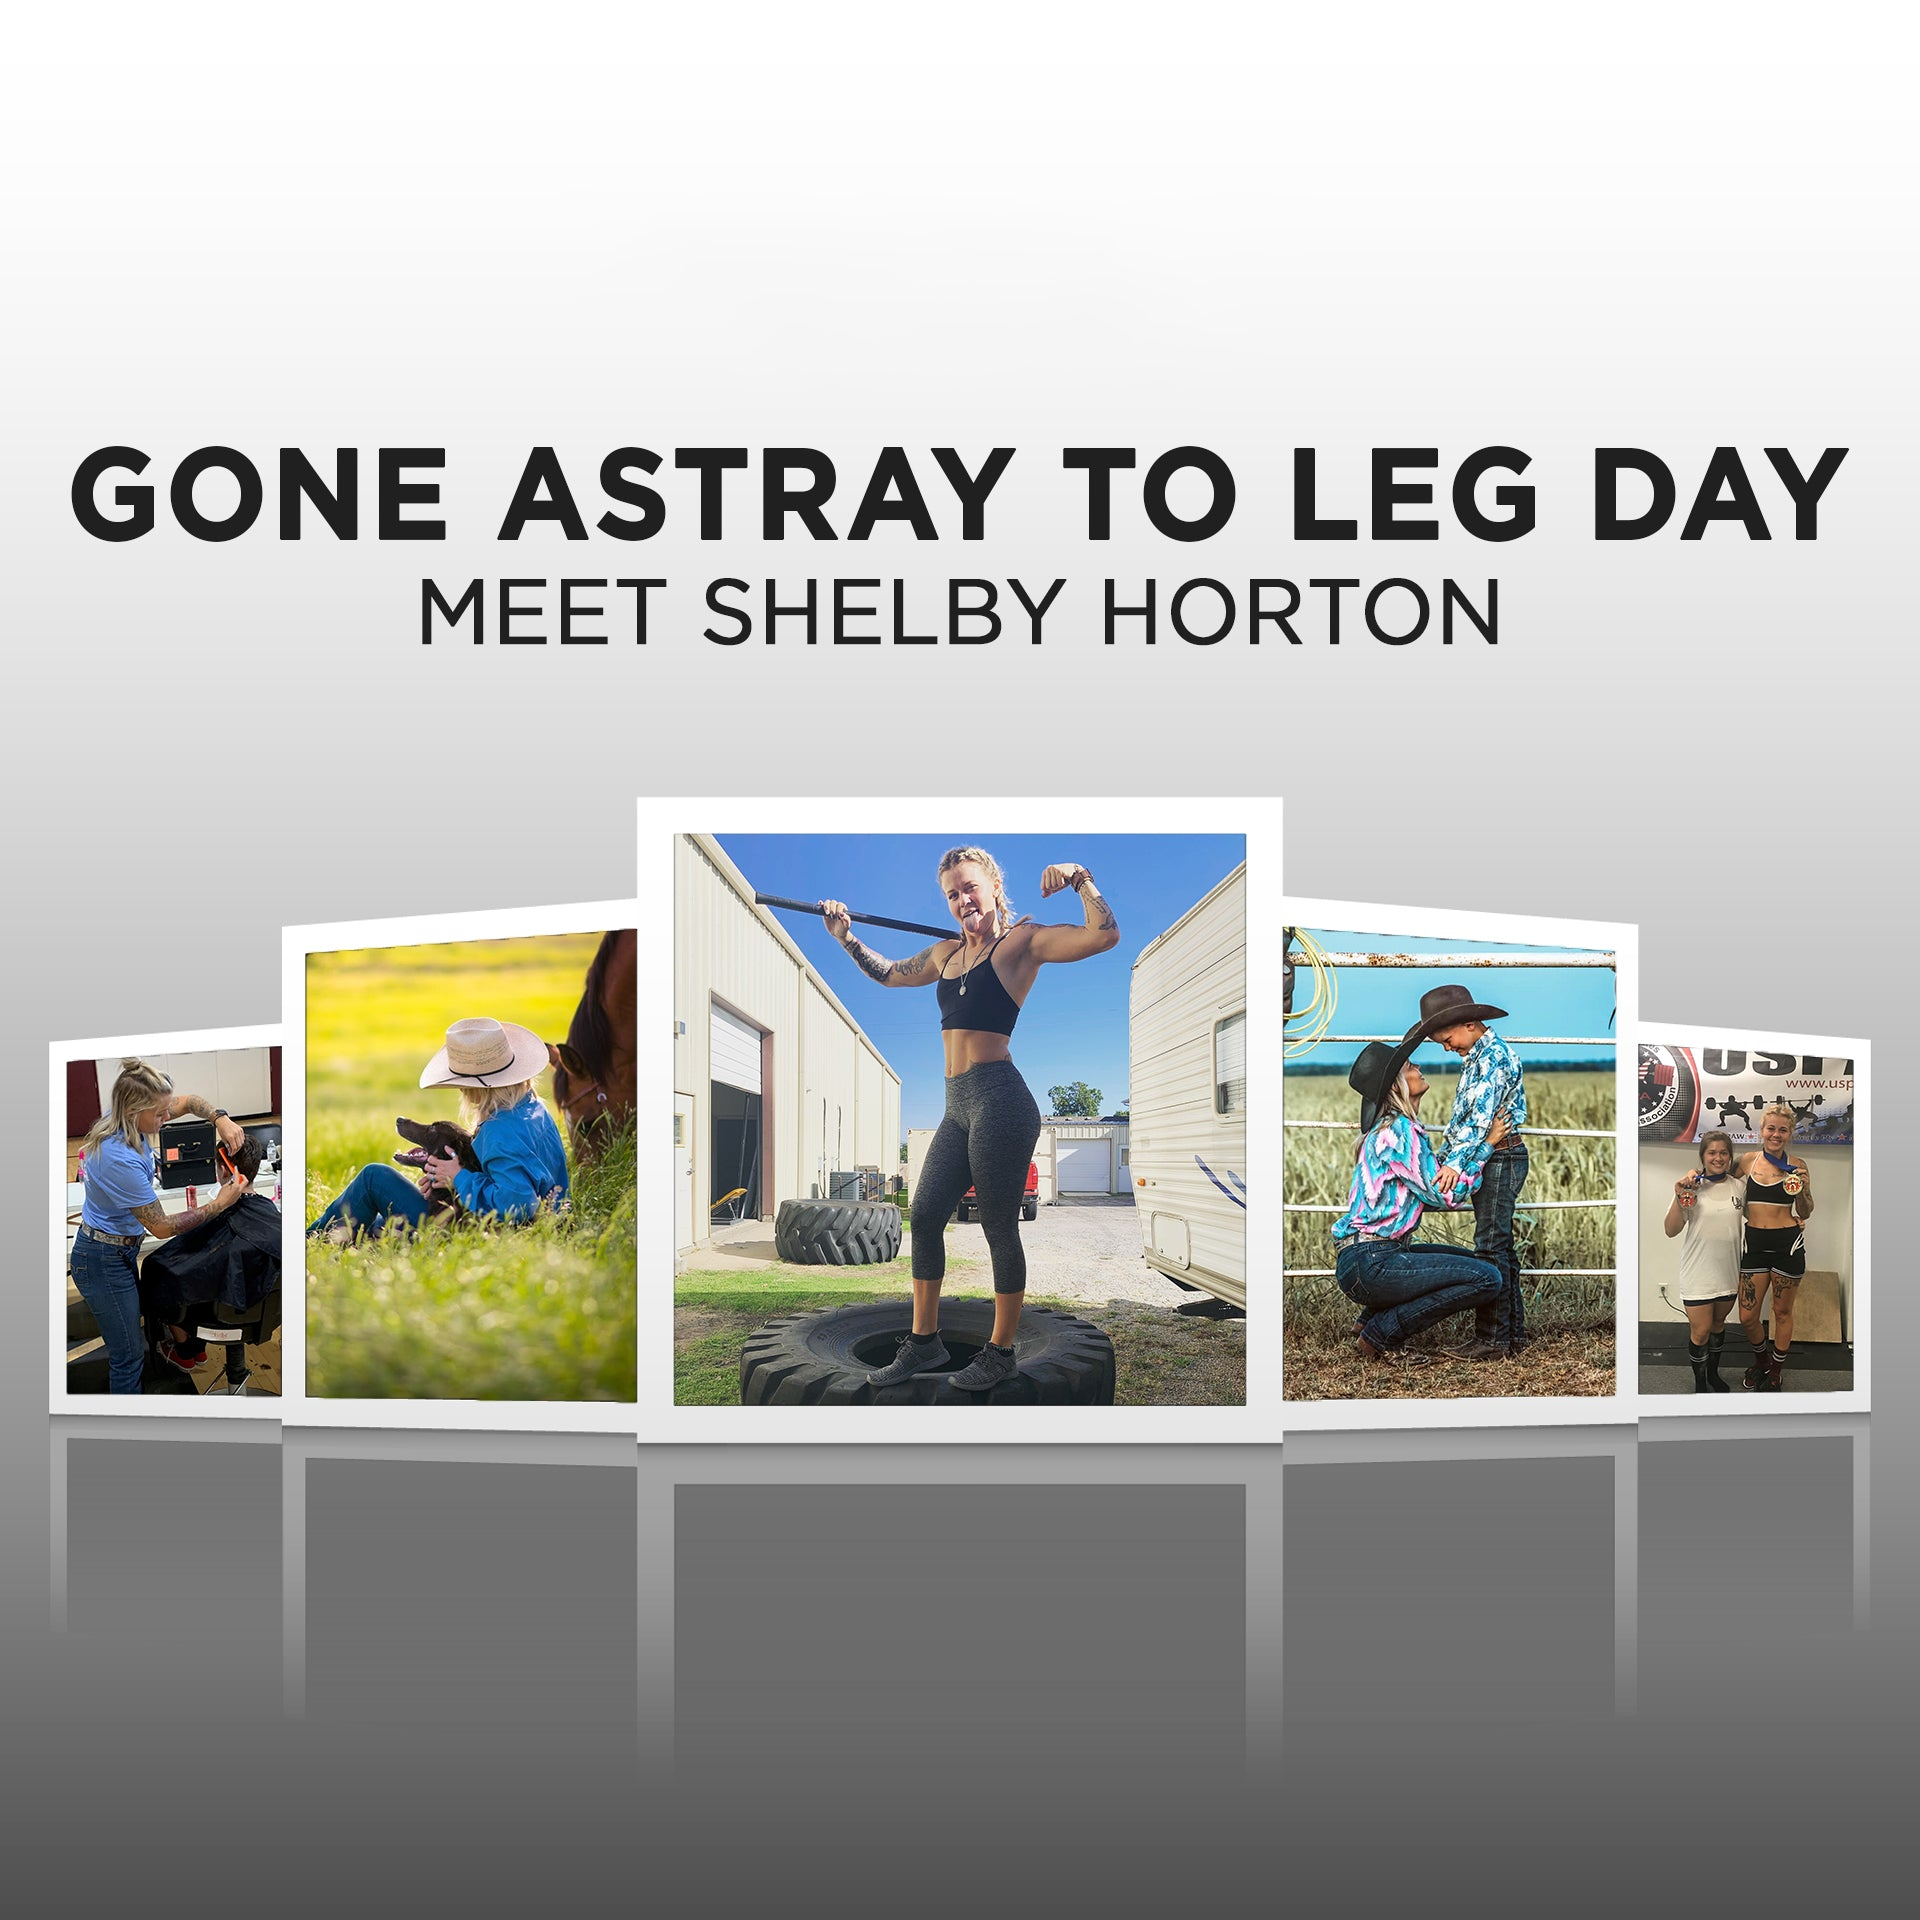 GONE ASTRAY TO LEG DAY: MEET SHELBY HORTON